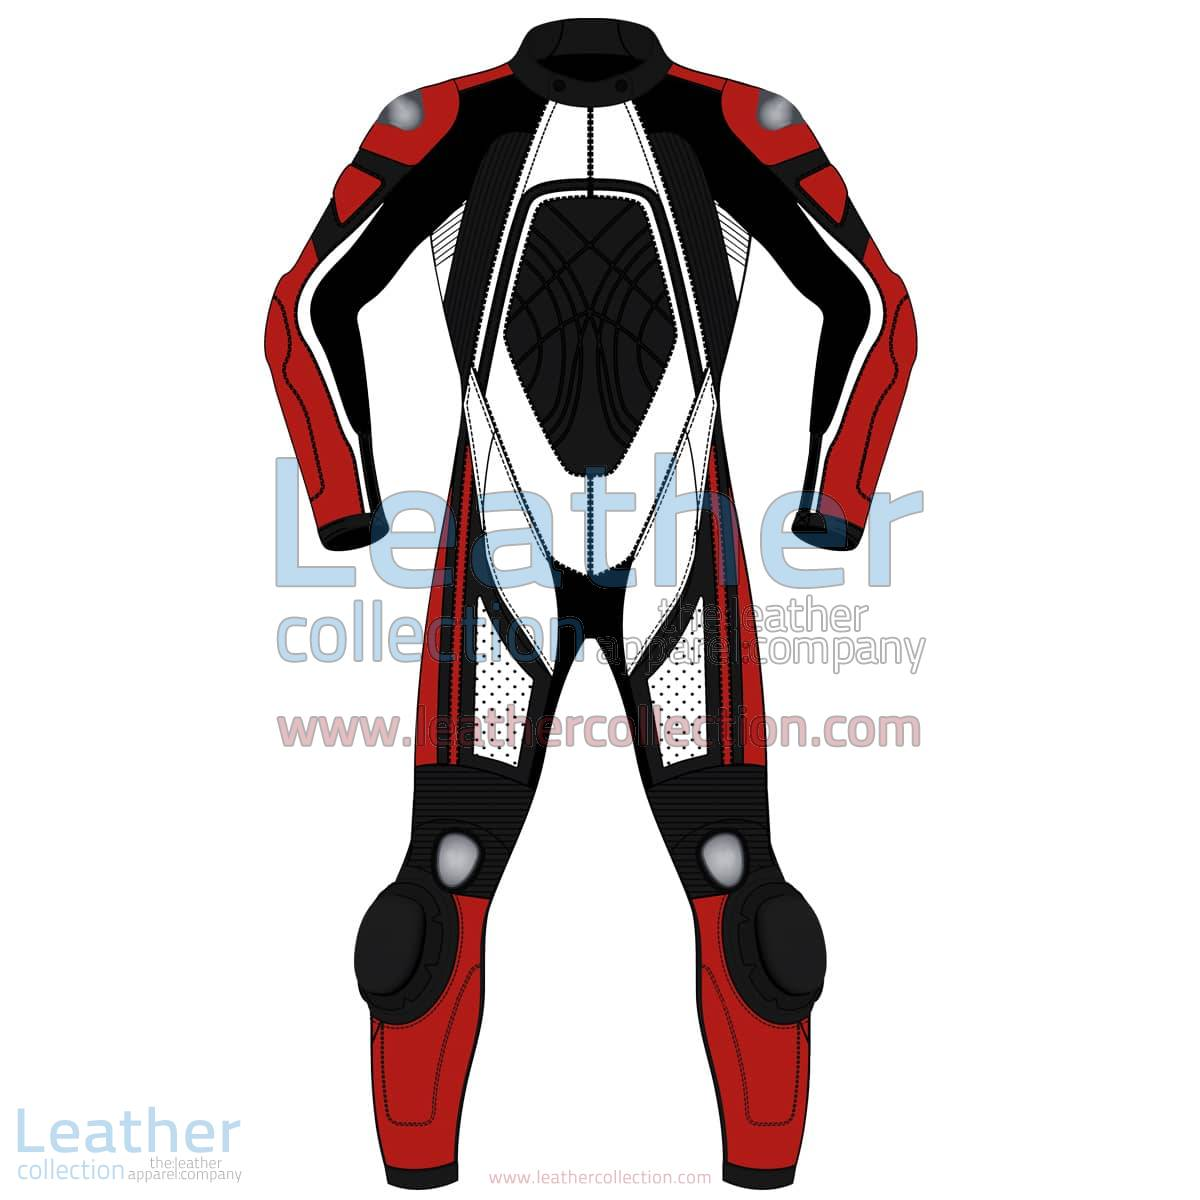 Tri Color One-Piece Motorbike Leather Suit For Men | Tri Color One-Piece motorcycle Leather Suit For Men